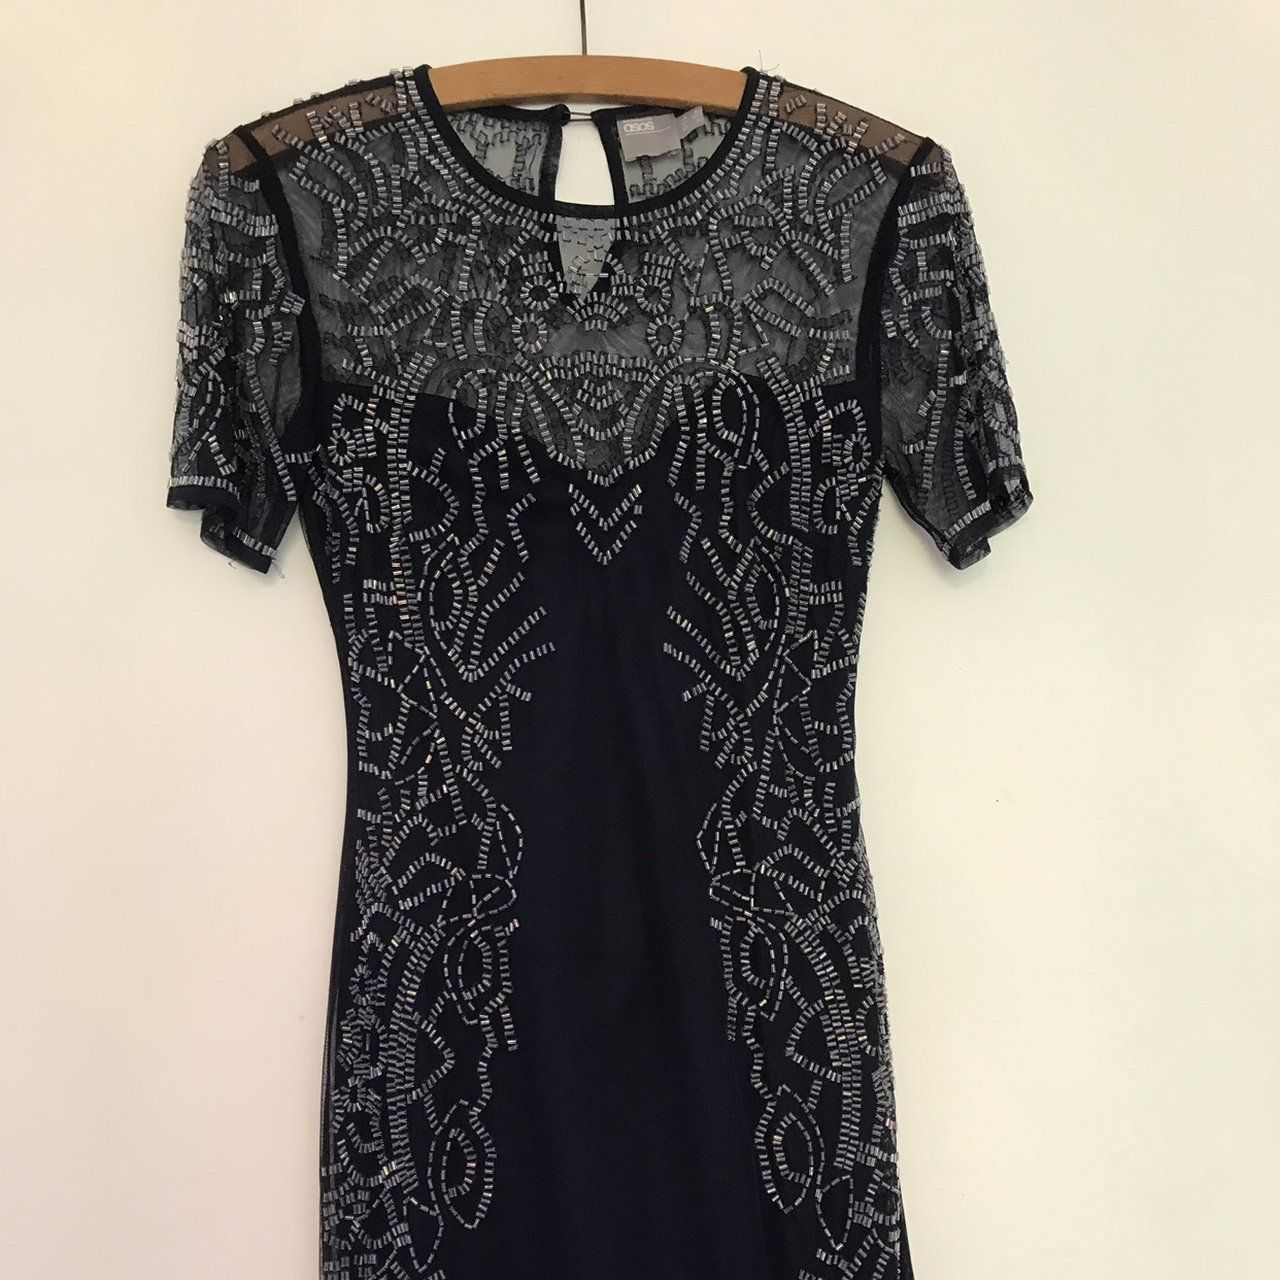 ASOS navy mini embroidered dress. Size 6. Worn once to an